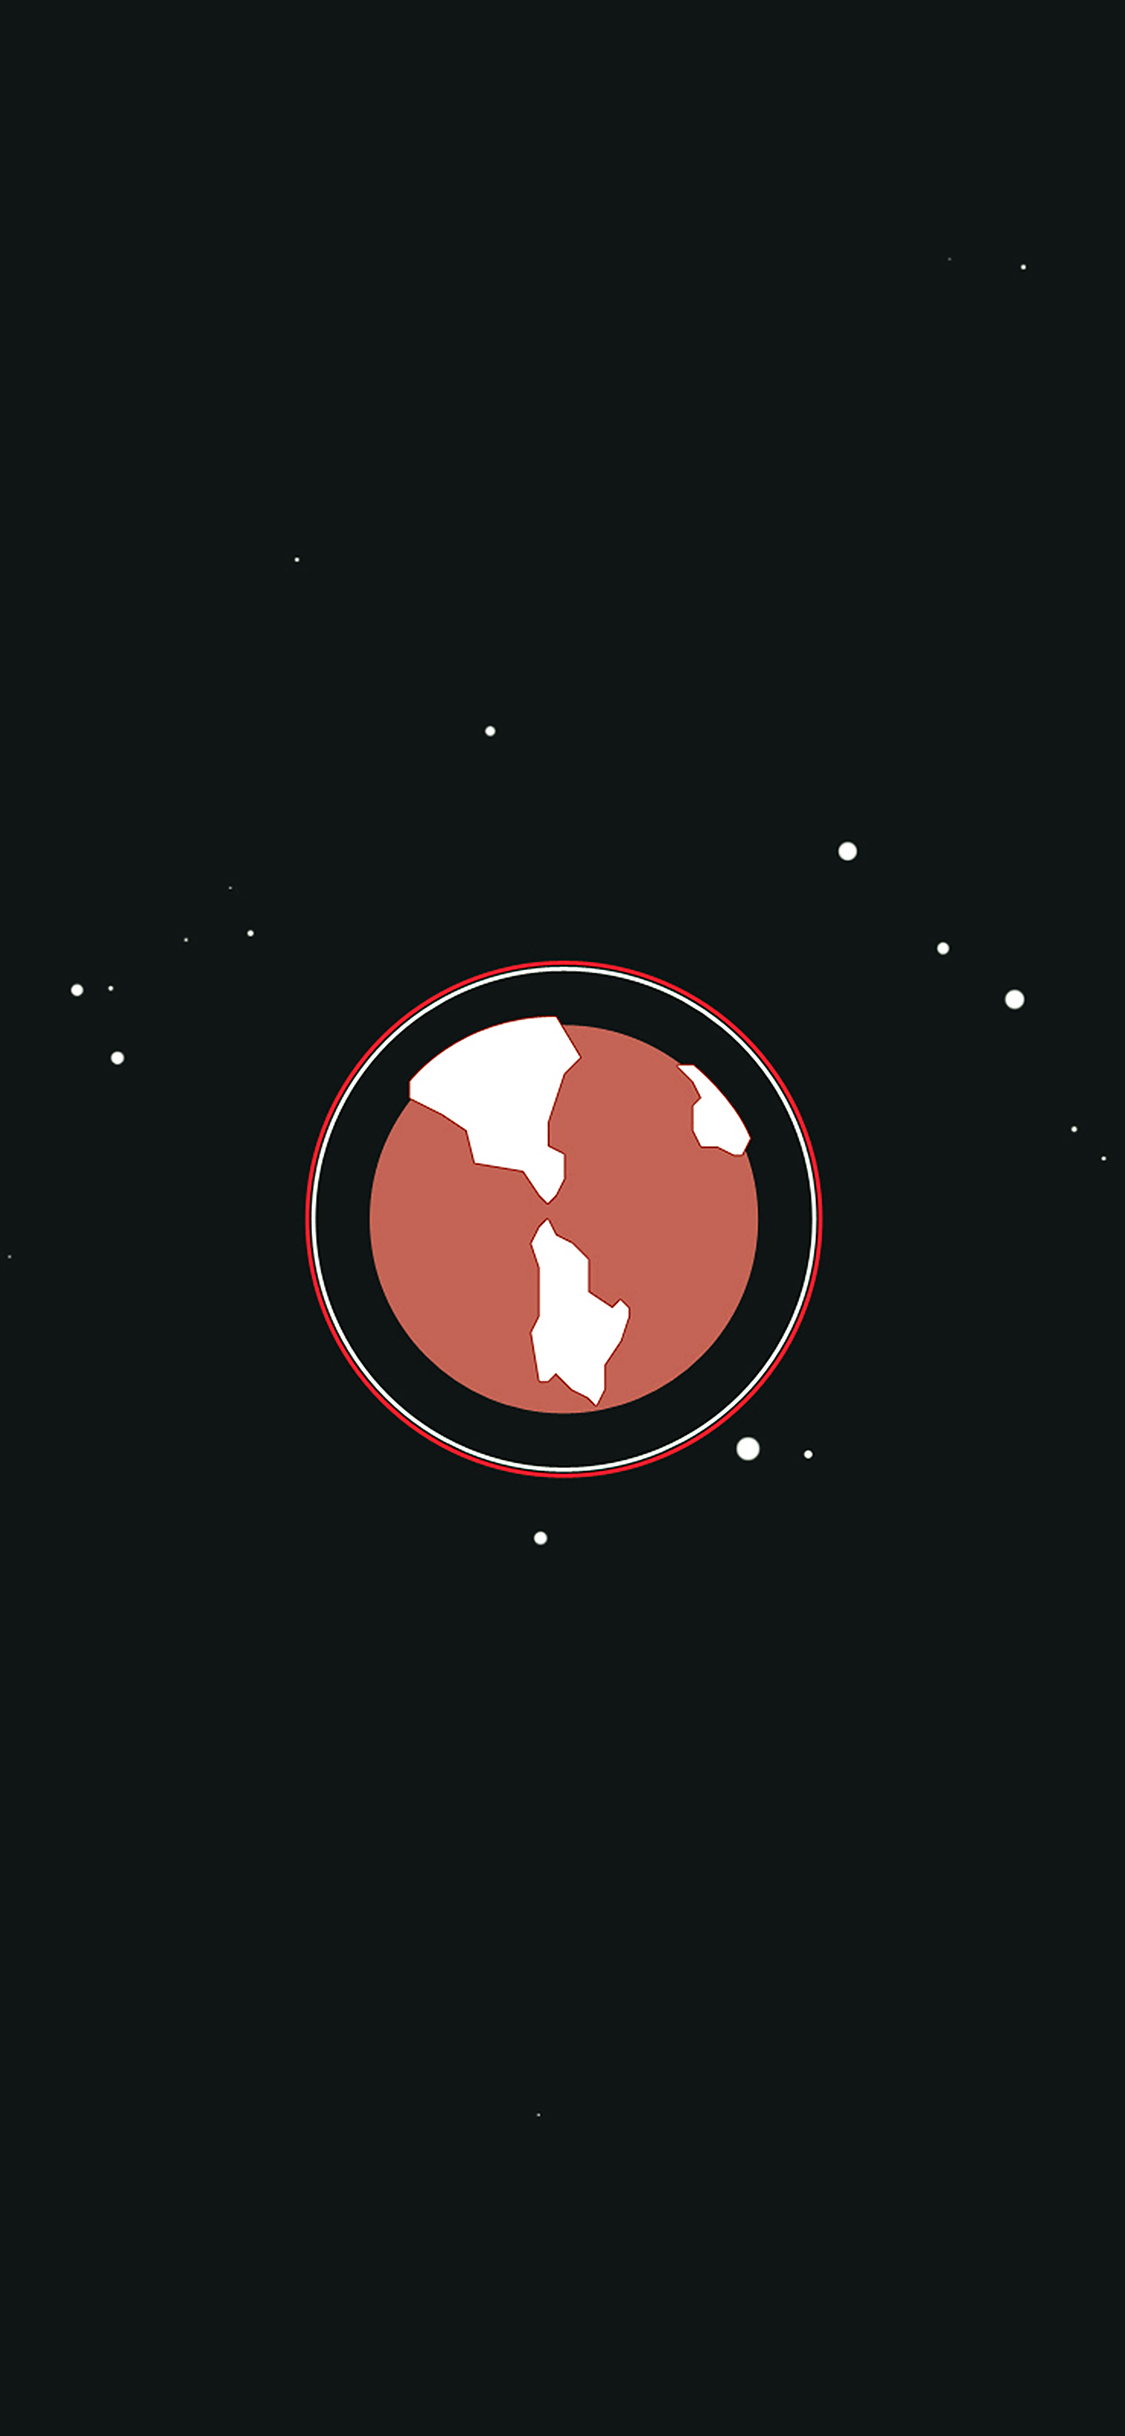 iPhoneXpapers.com-Apple-iPhone-wallpaper-ah18-earth-red-planet-minimal-simple-illust-art